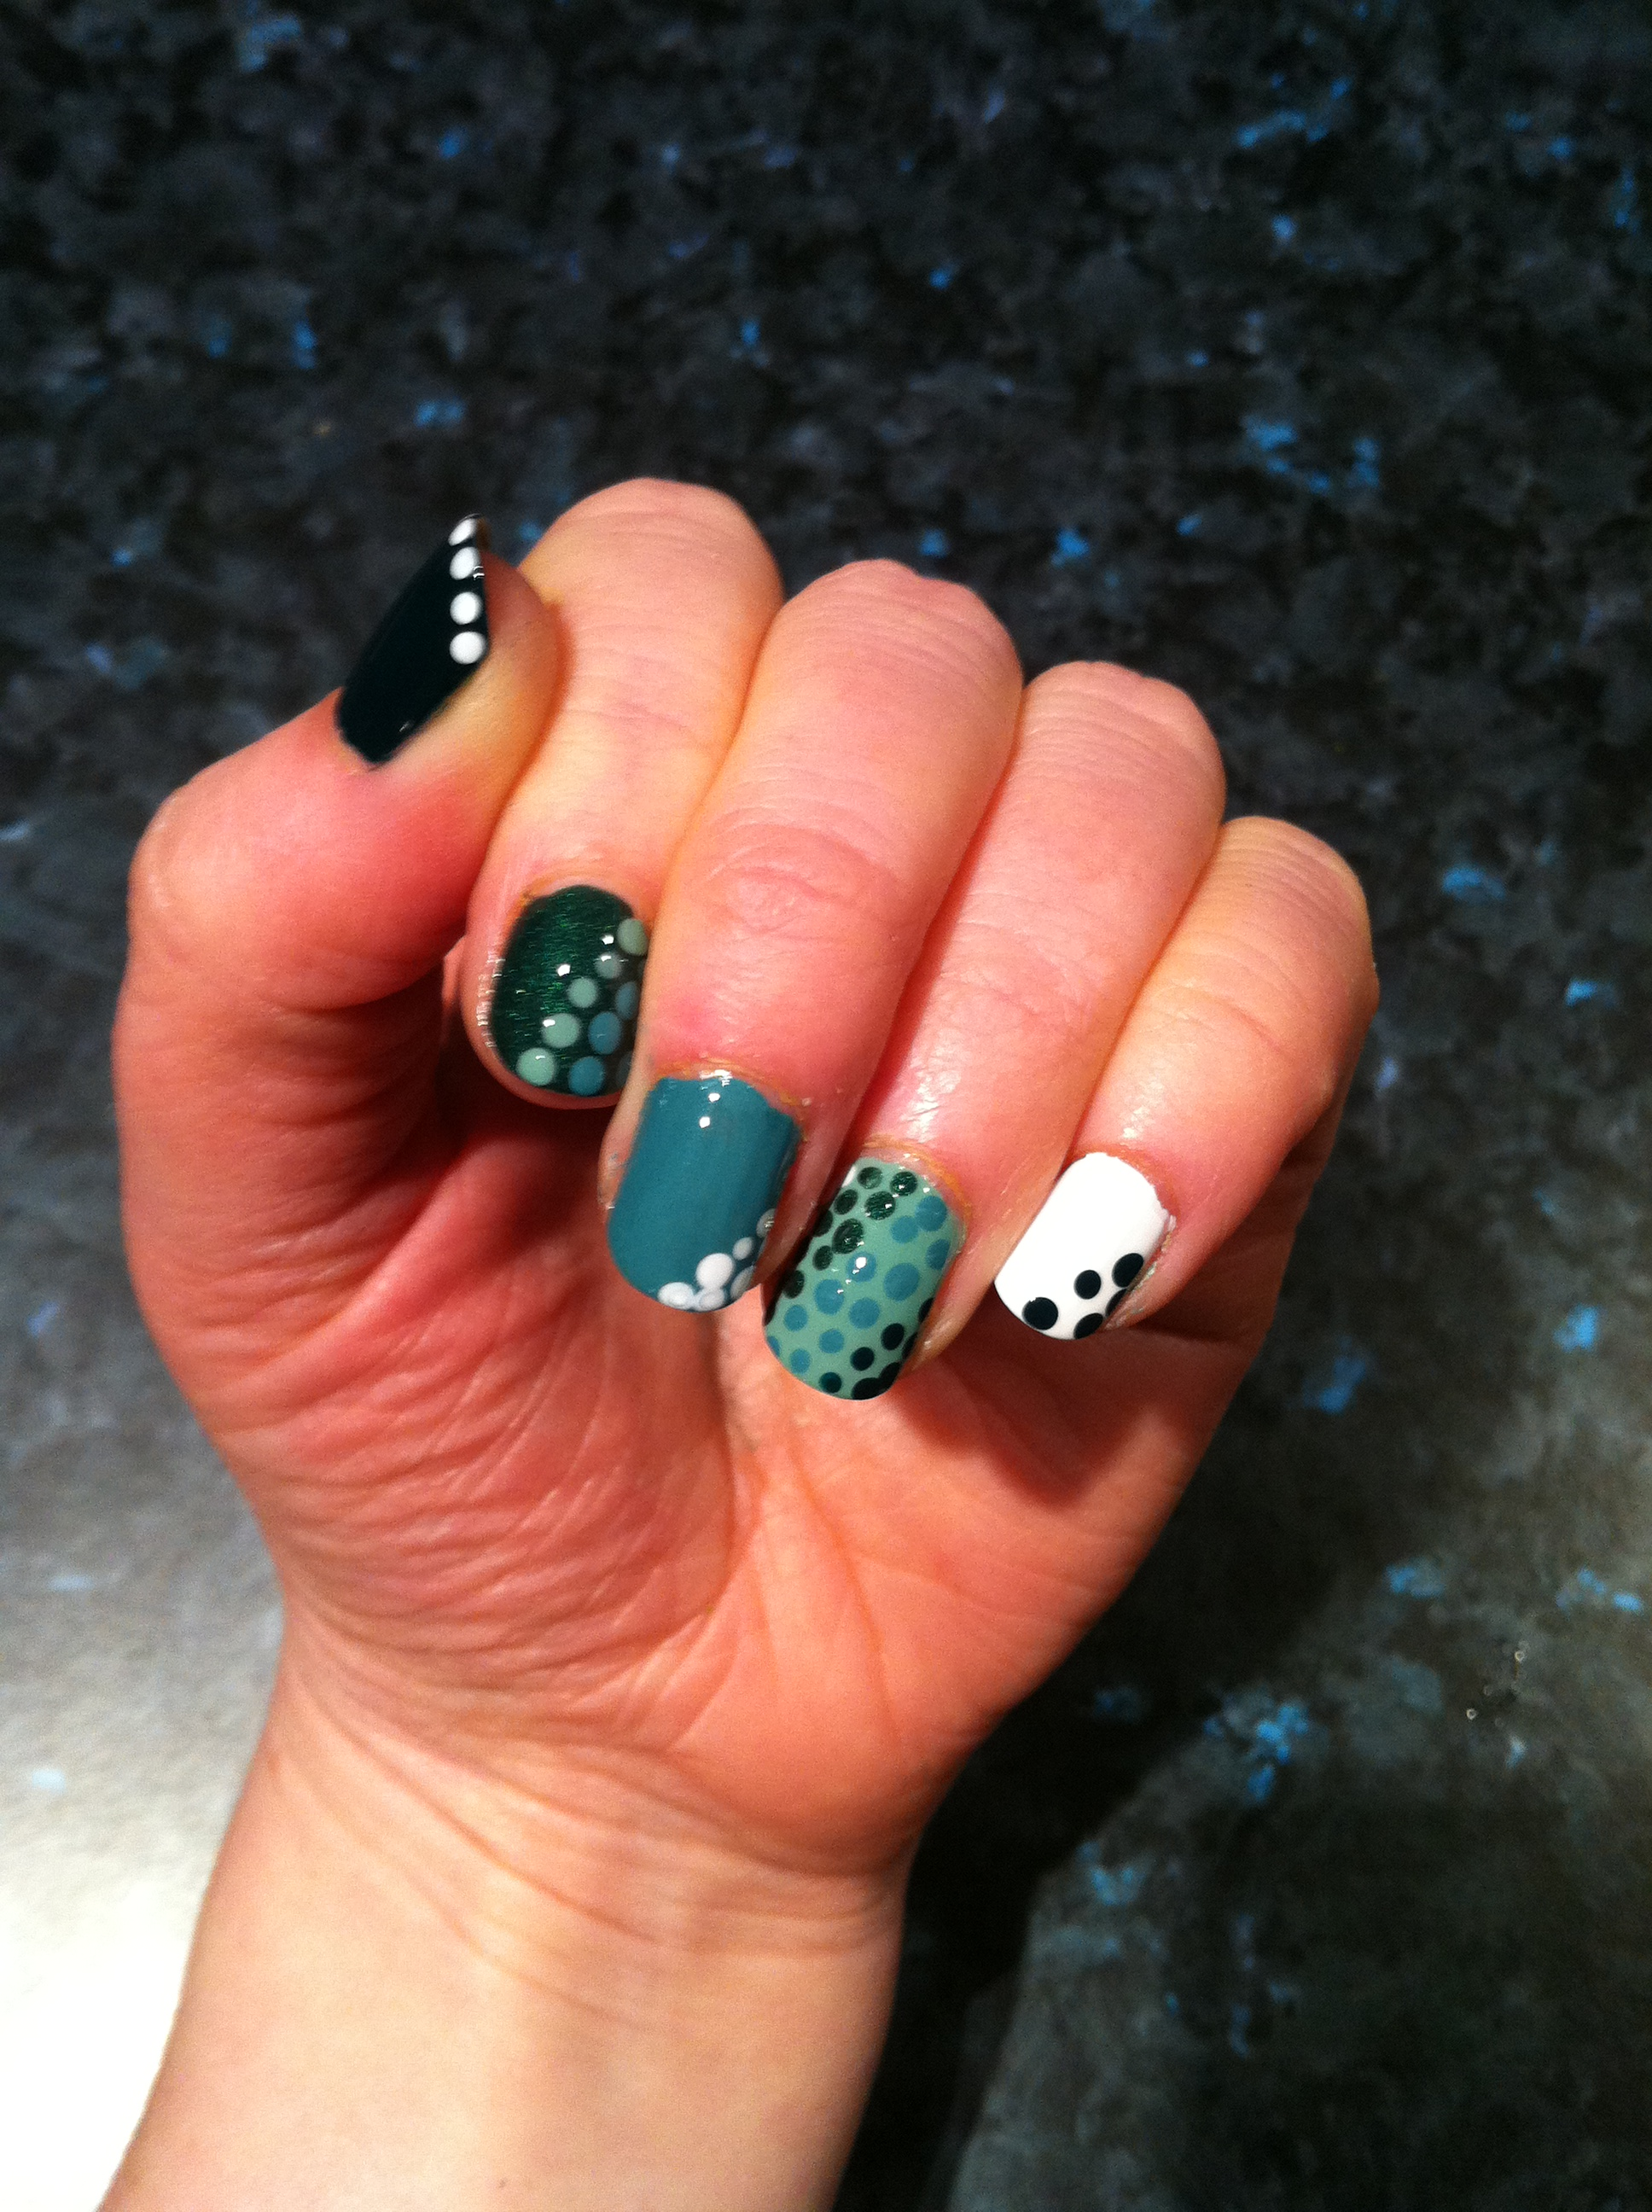 Green manicure with polka dots